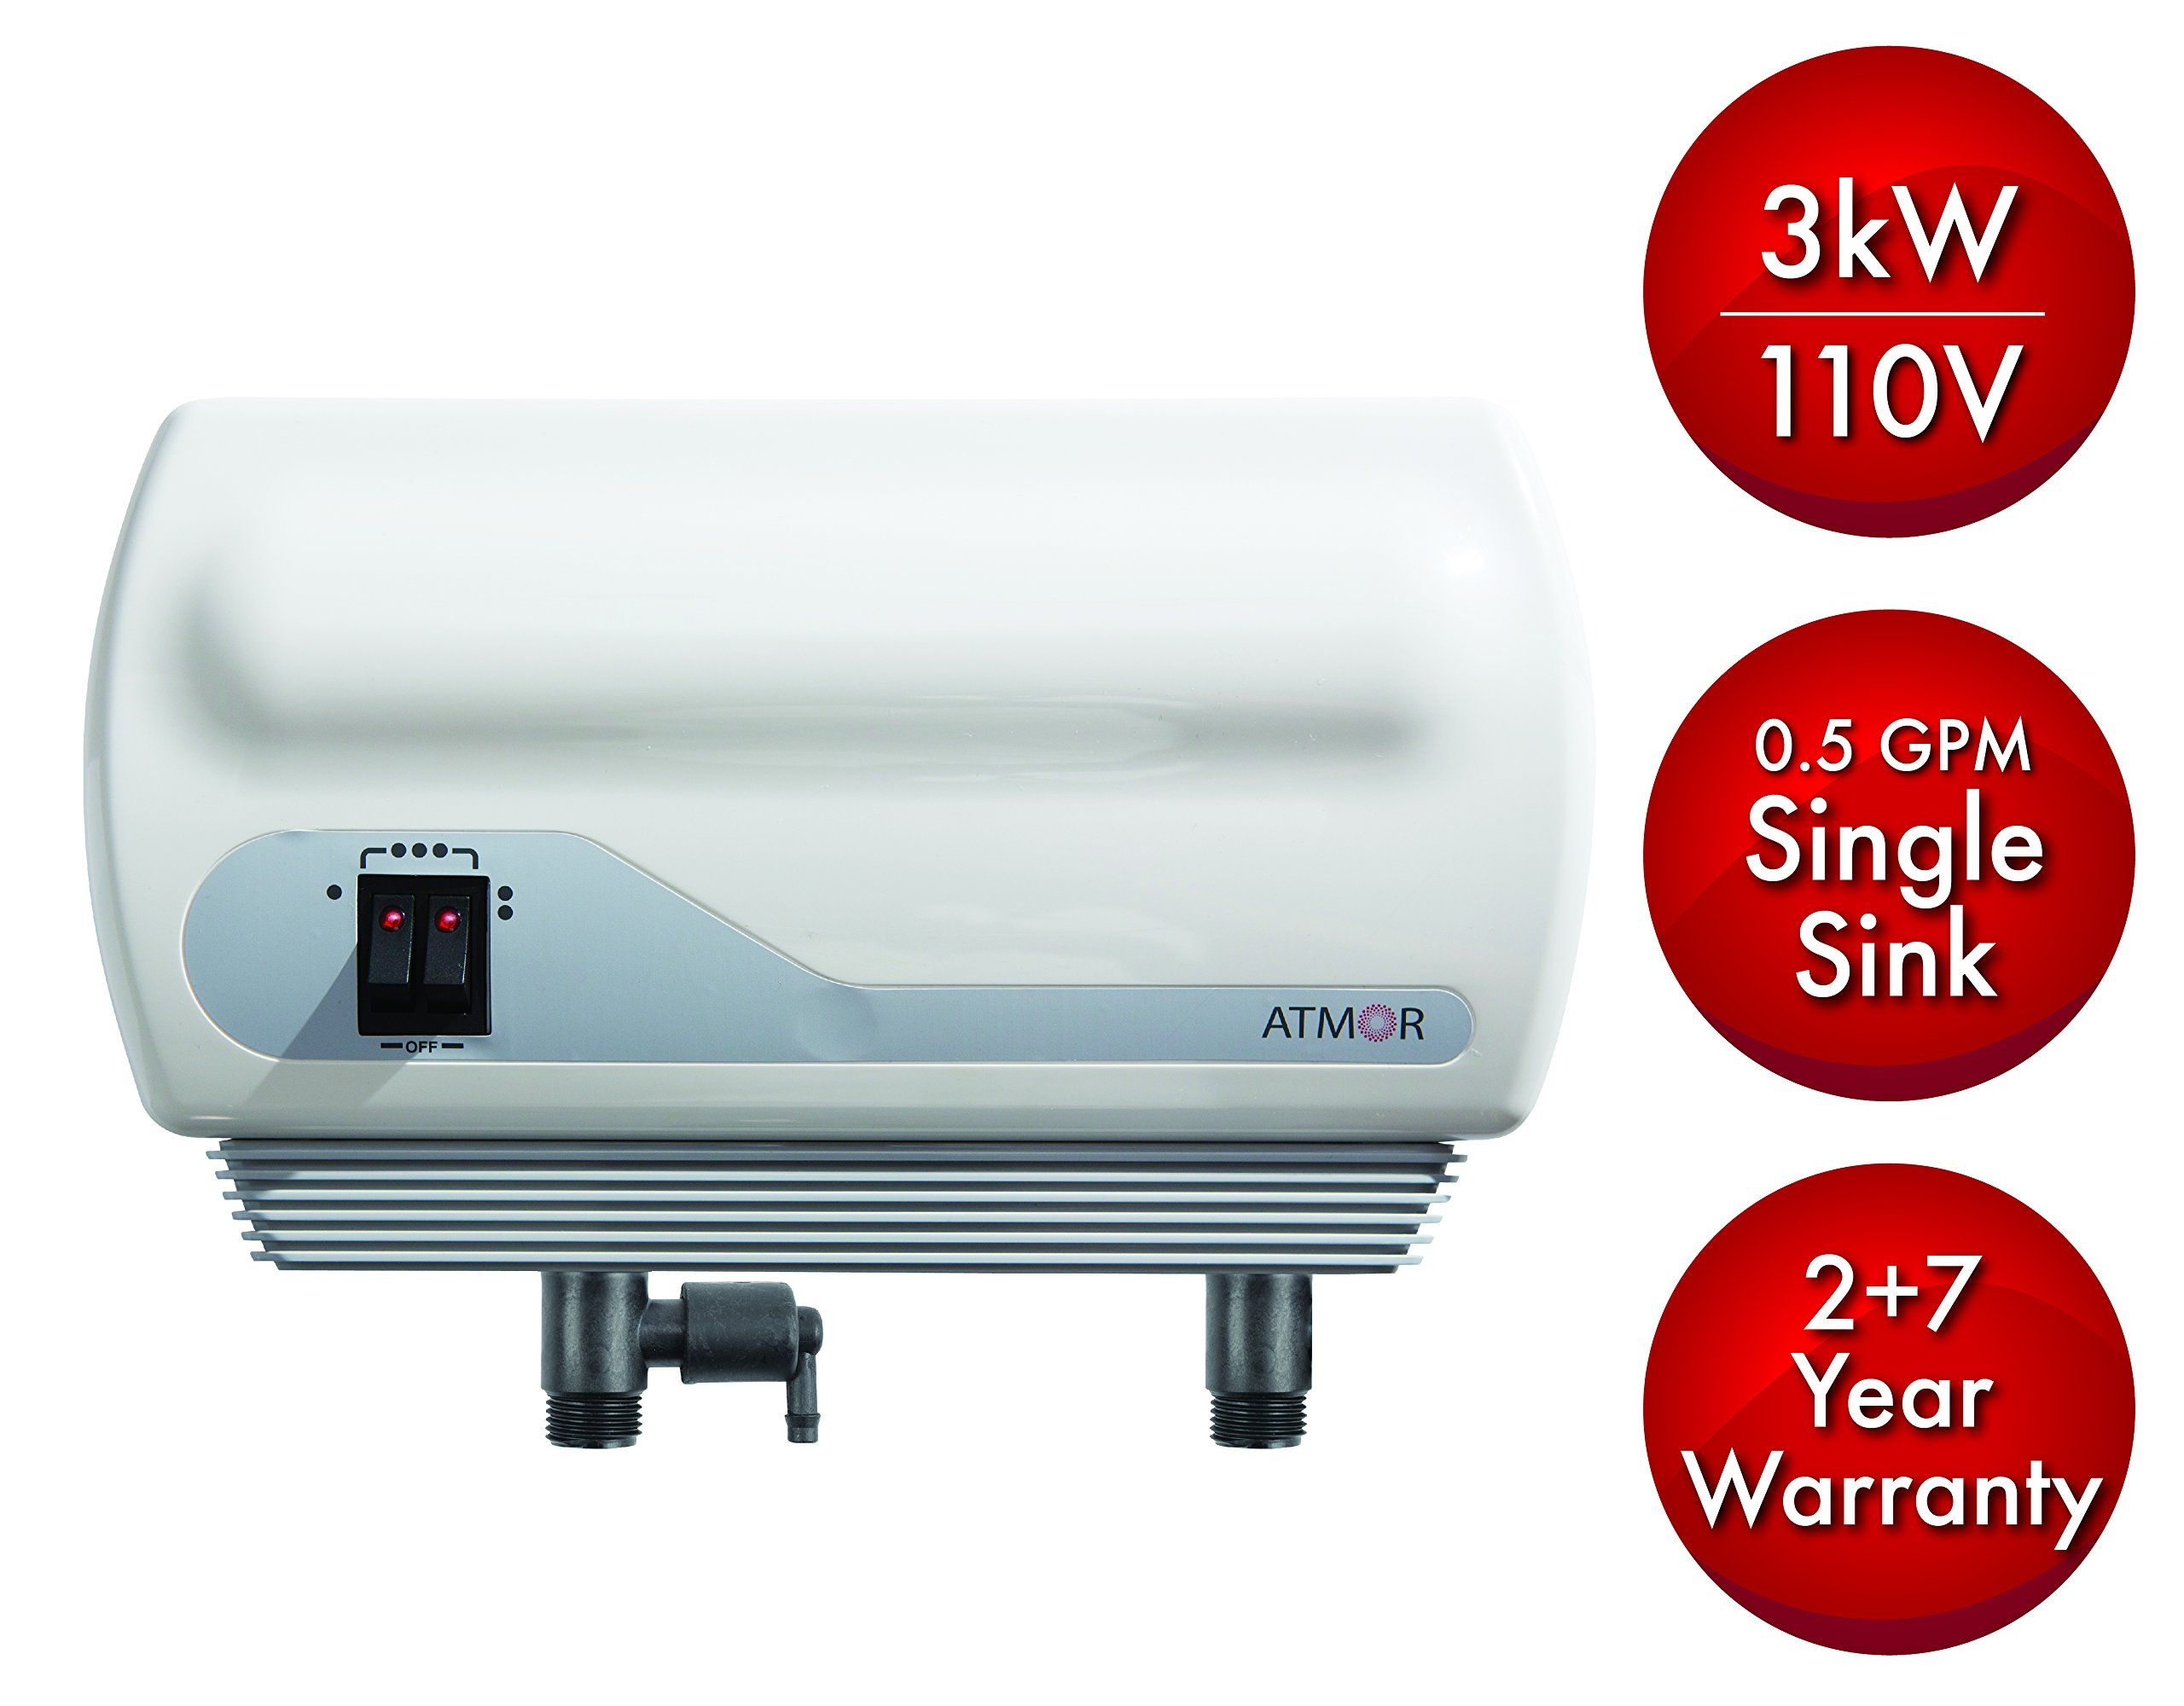 Atmor At 900 03 Single Sink 3kw 110v 0 5 Gpm Point Of Use Tankless Electric Water Heater And In 2020 Water Heater Tankless Water Heater Tankless Water Heater Electric